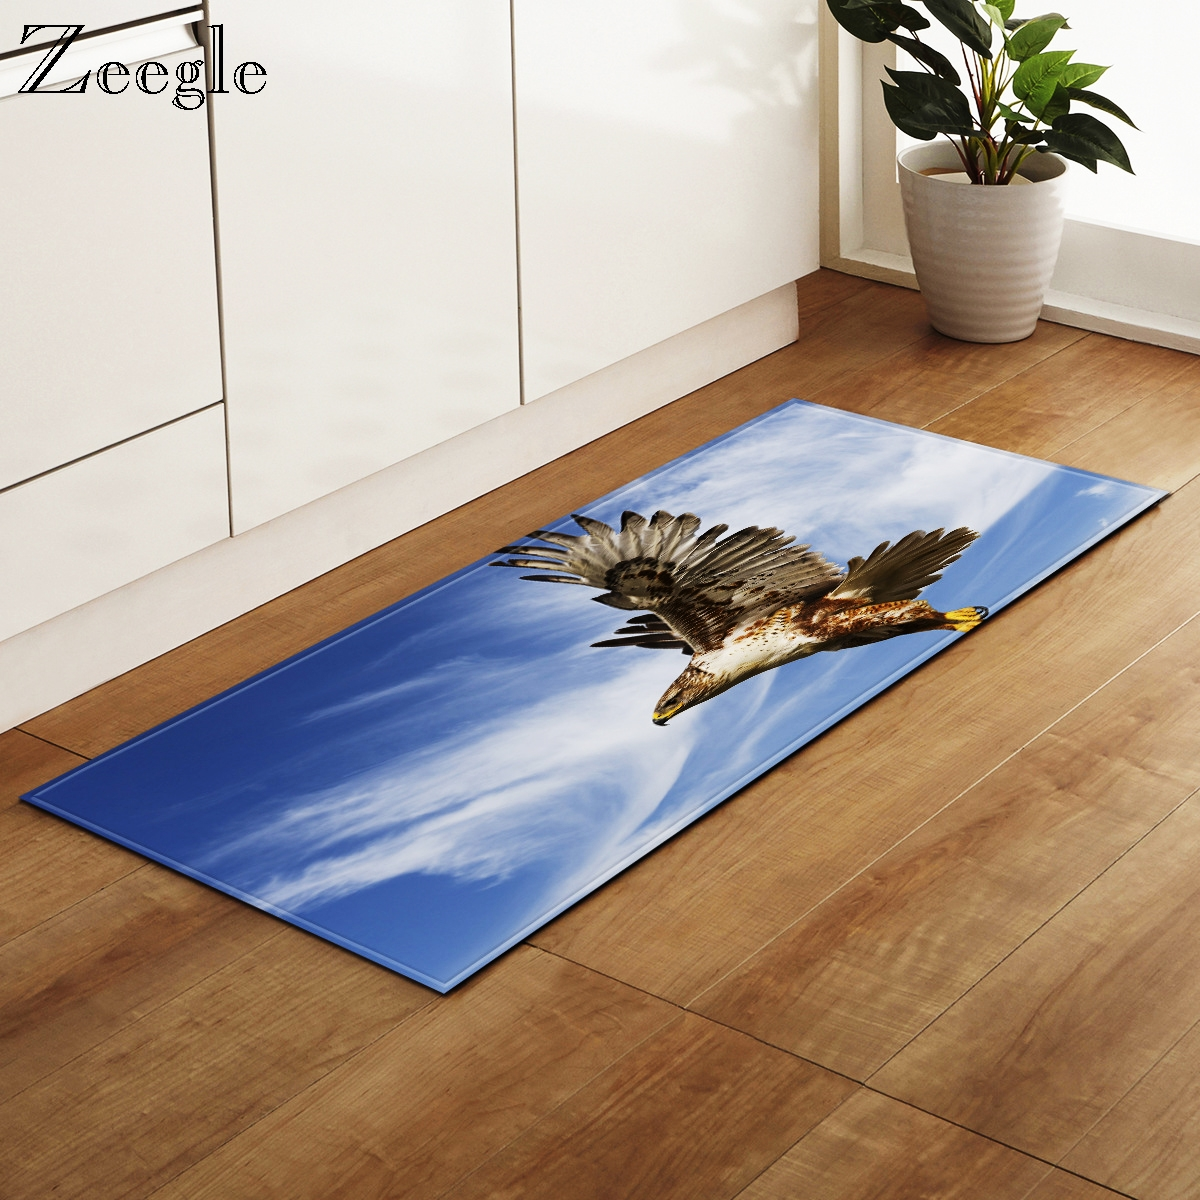 Zeegle Printed Eagle Rectangle Carpet Living Room Decoration Foot Rug Anti-slip Kitchen Mat Home Door Entrance Mat Modern Rug